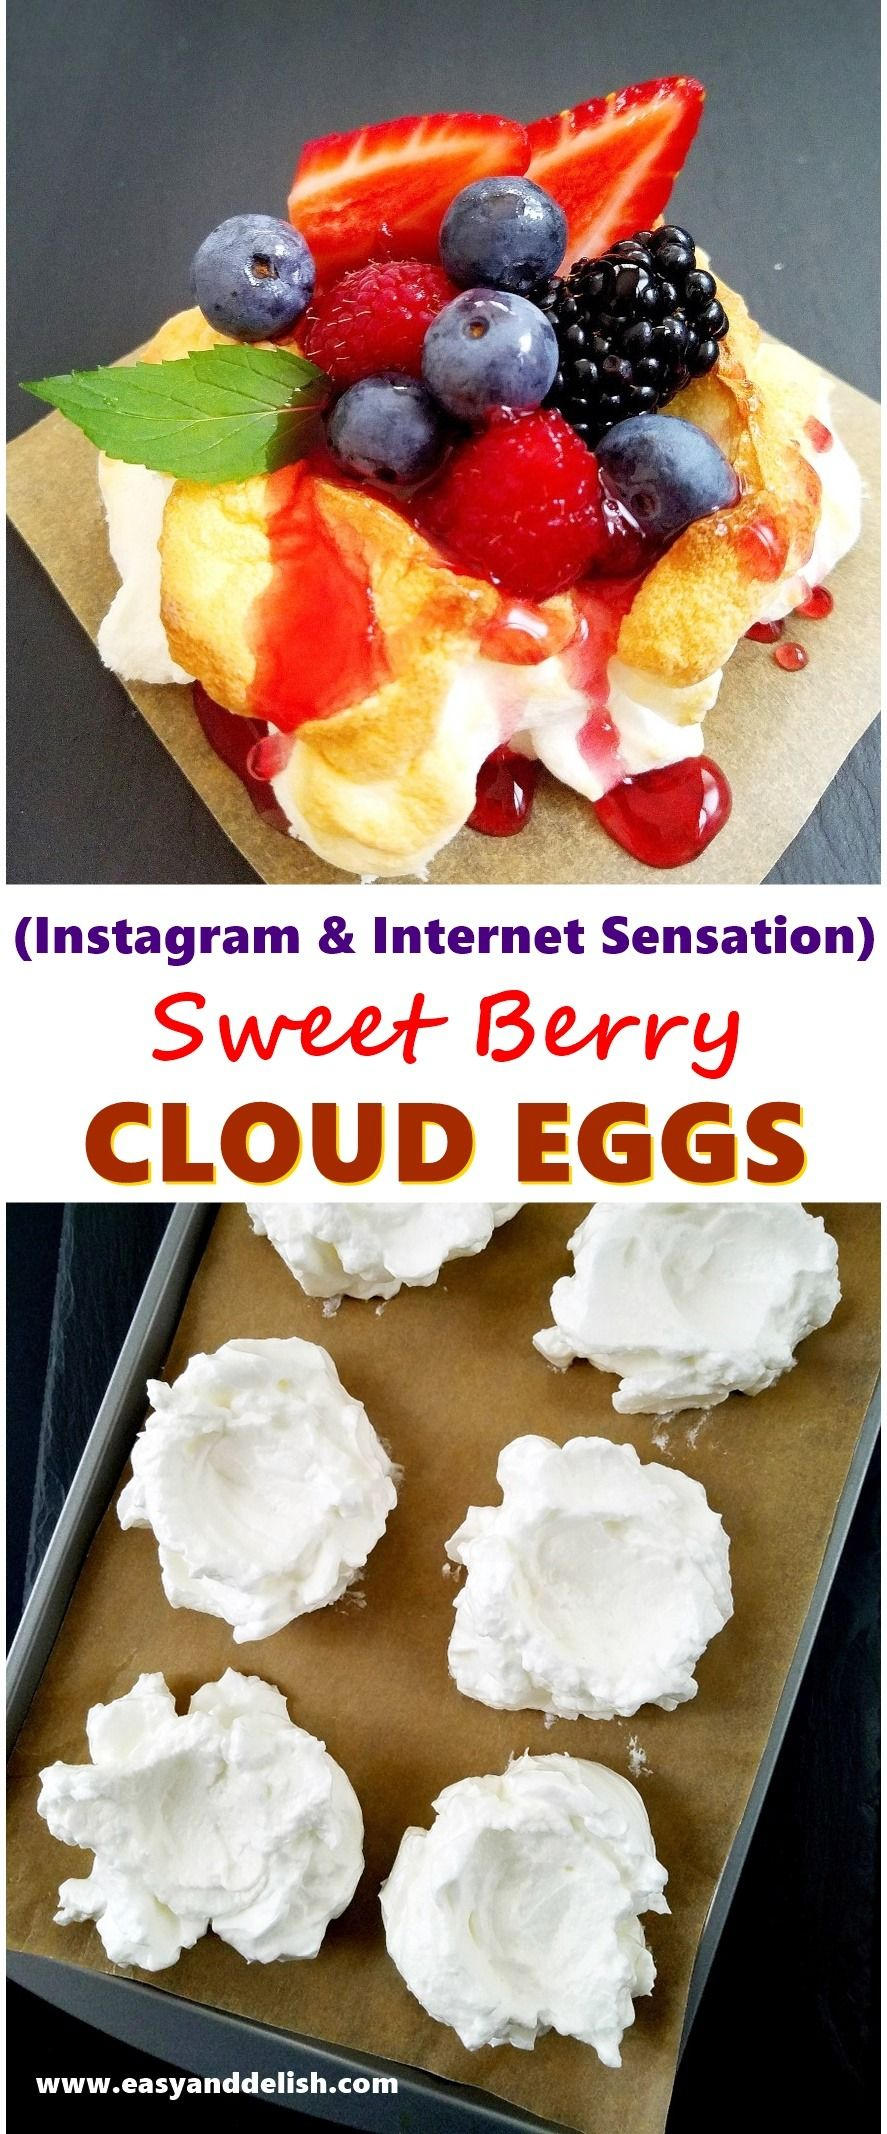 Sweet Berry Cloud Eggs Is A Quick Easy And Light Dessert Made From A Few Simple Ingredients This Is The Unique Sweet Version Of The Instagram And